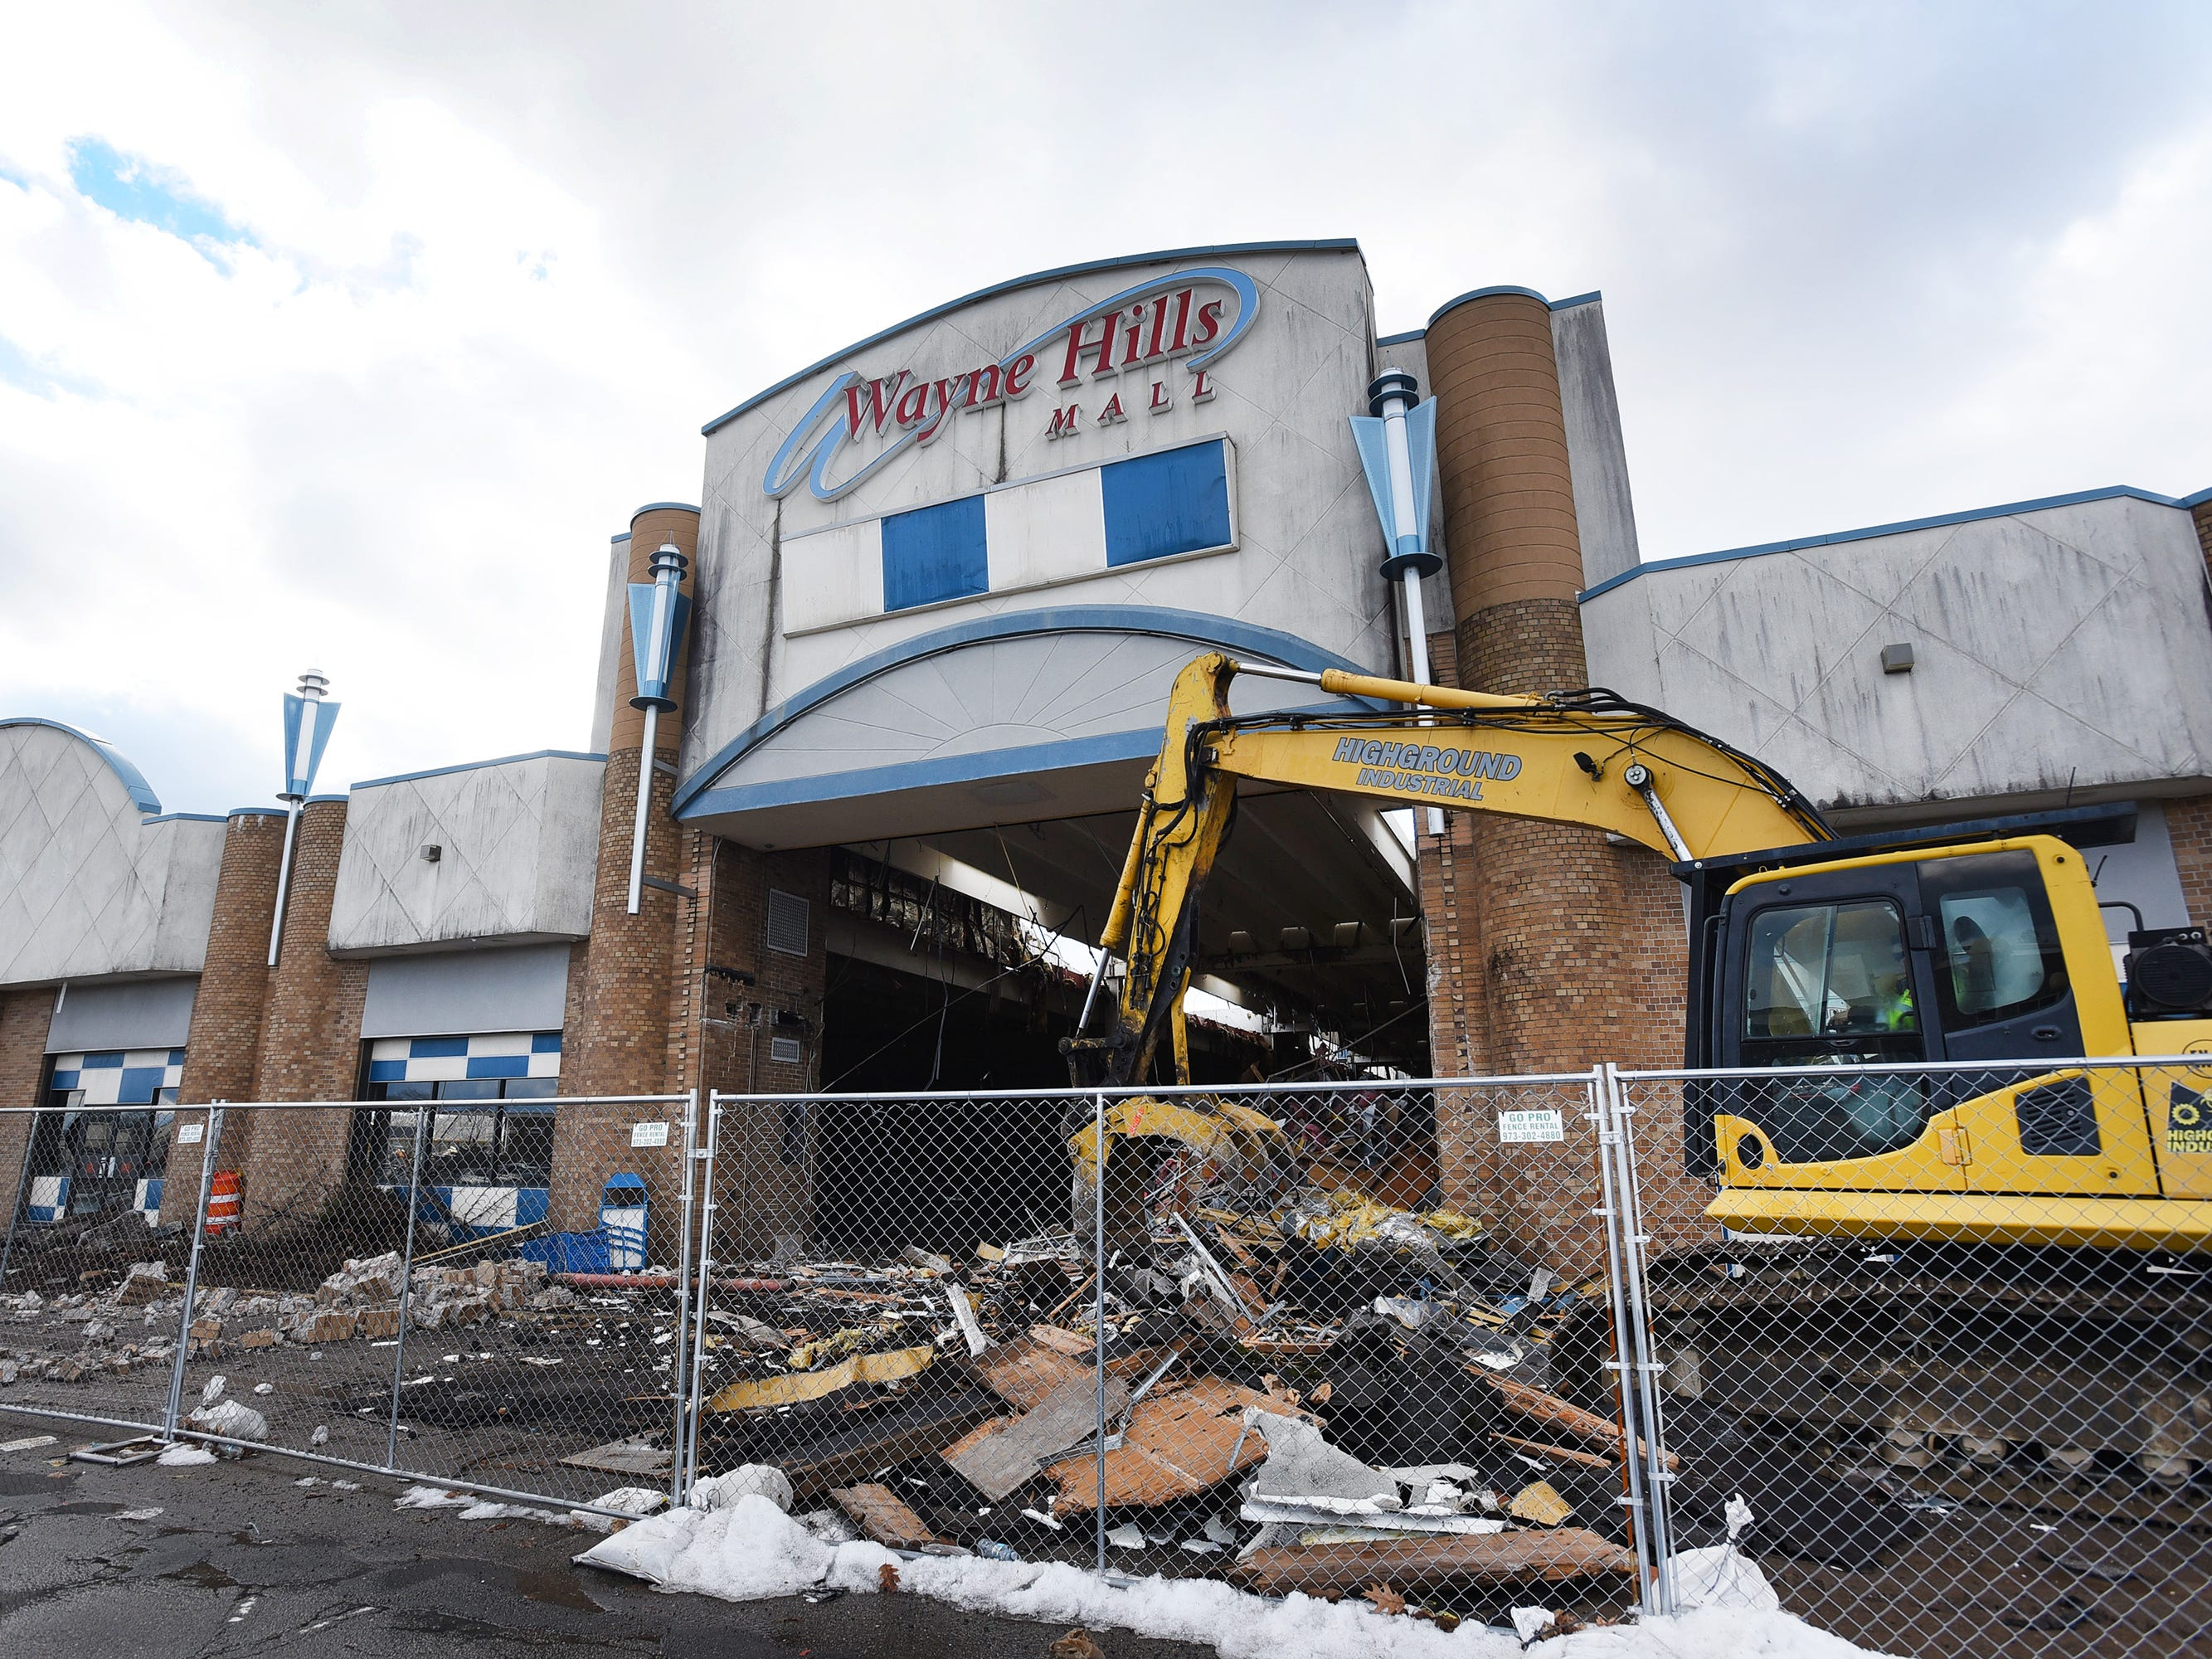 A worker operates an excavator to demolish Wayne Hills Mall on Monday.